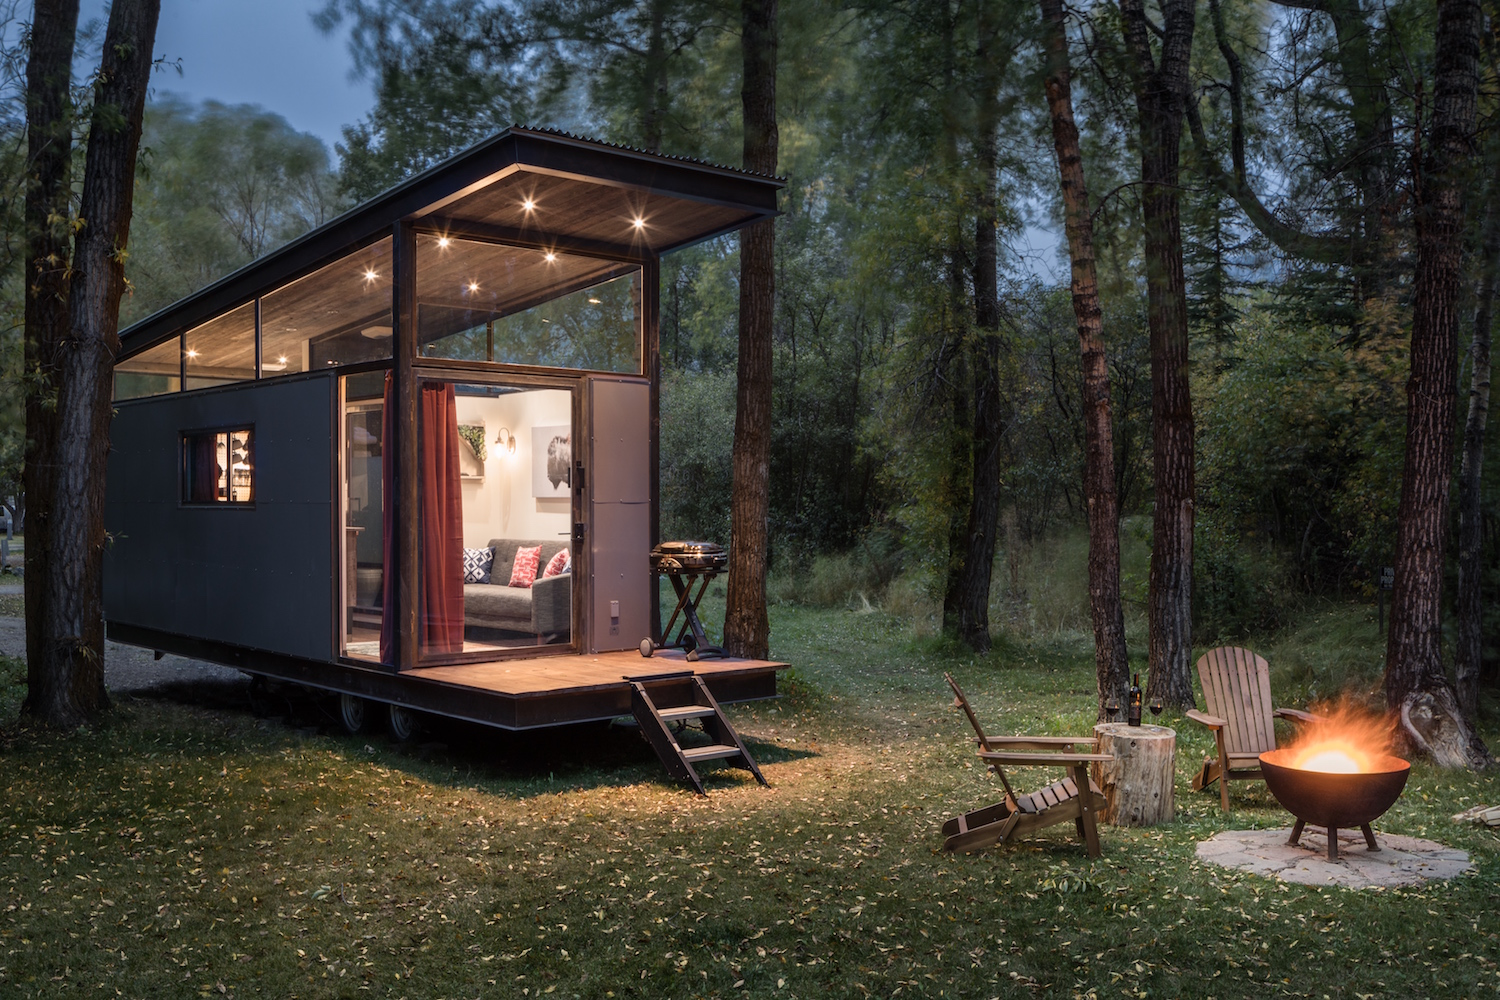 Wedge-shaped tiny house offers a compact home for two